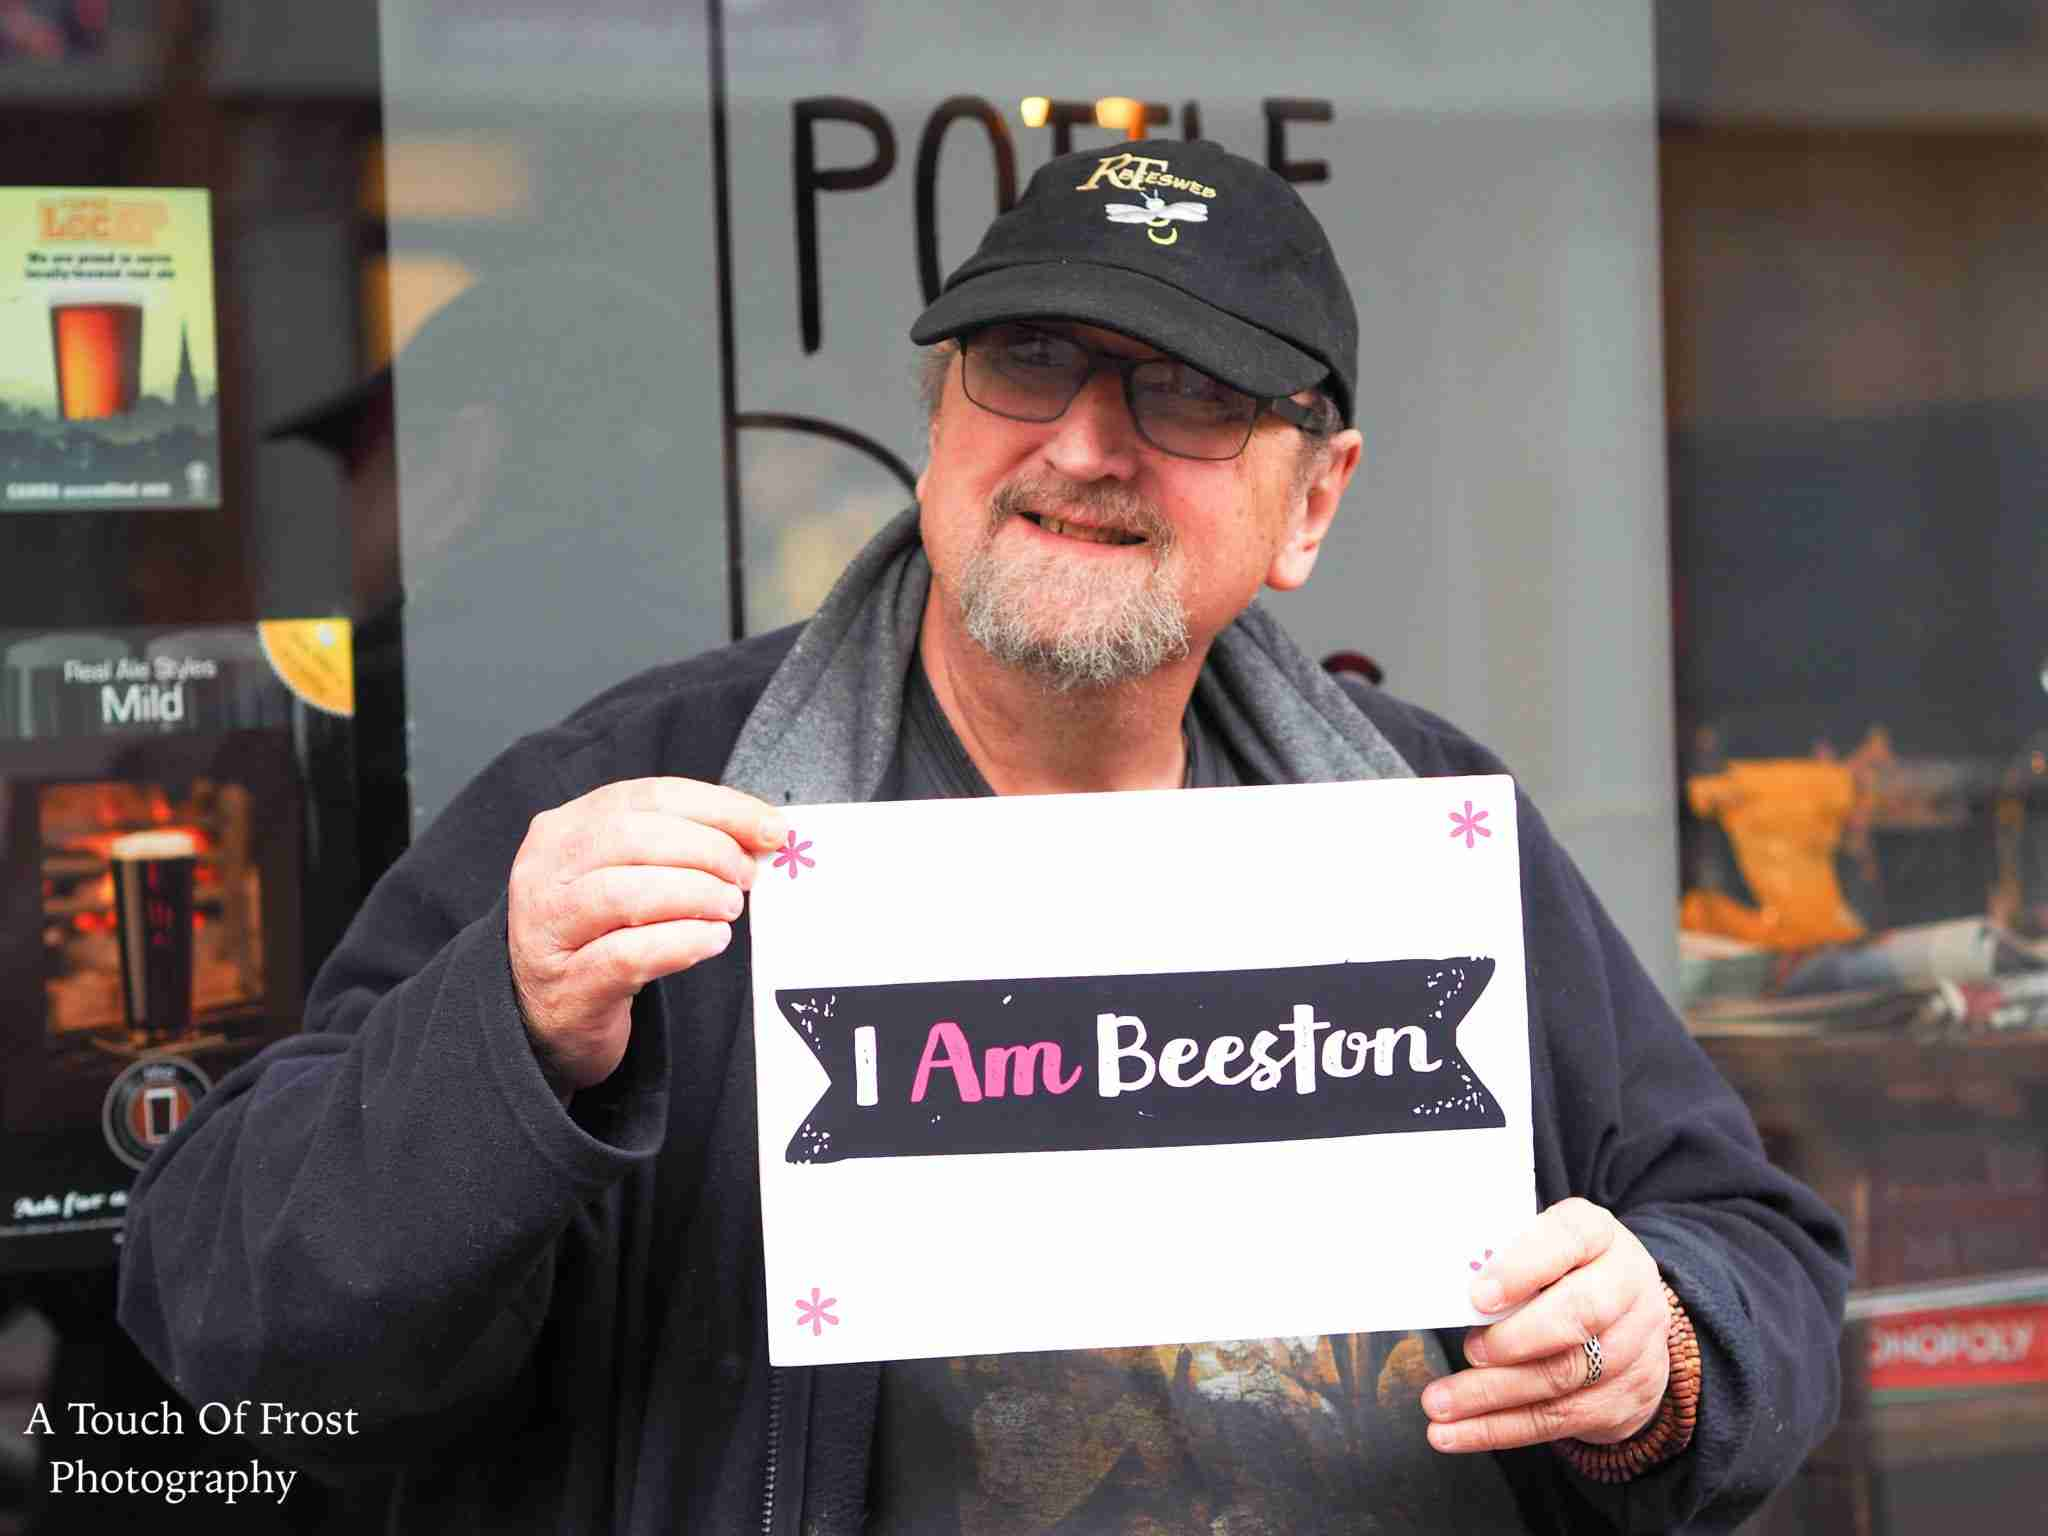 I am Beeston: Mikk Skinner